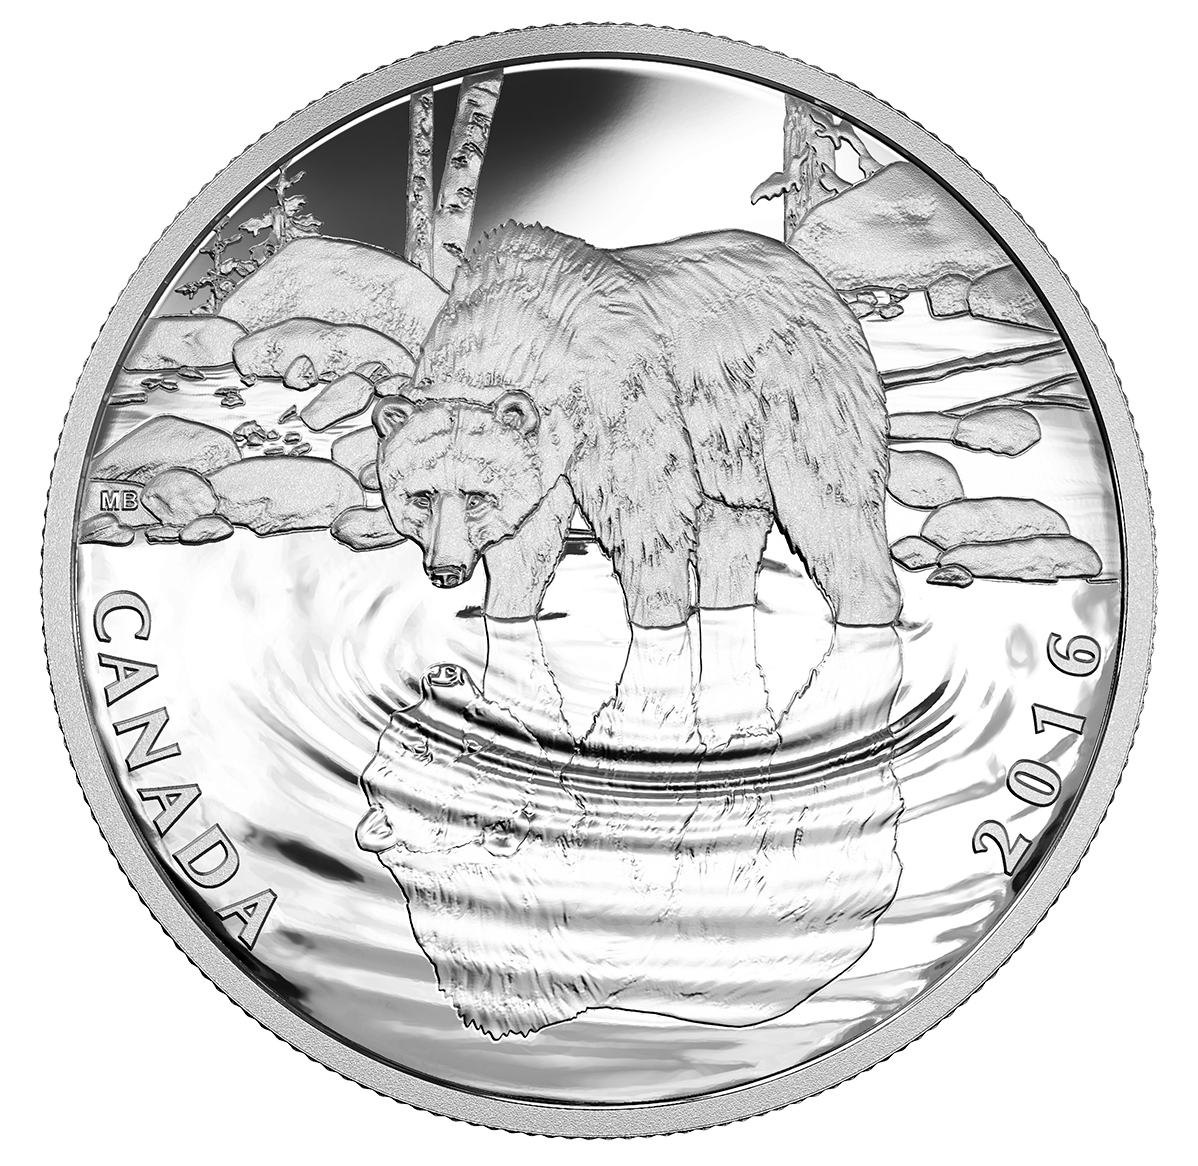 Royal Canadian Mint -- a vadvilág tükörben